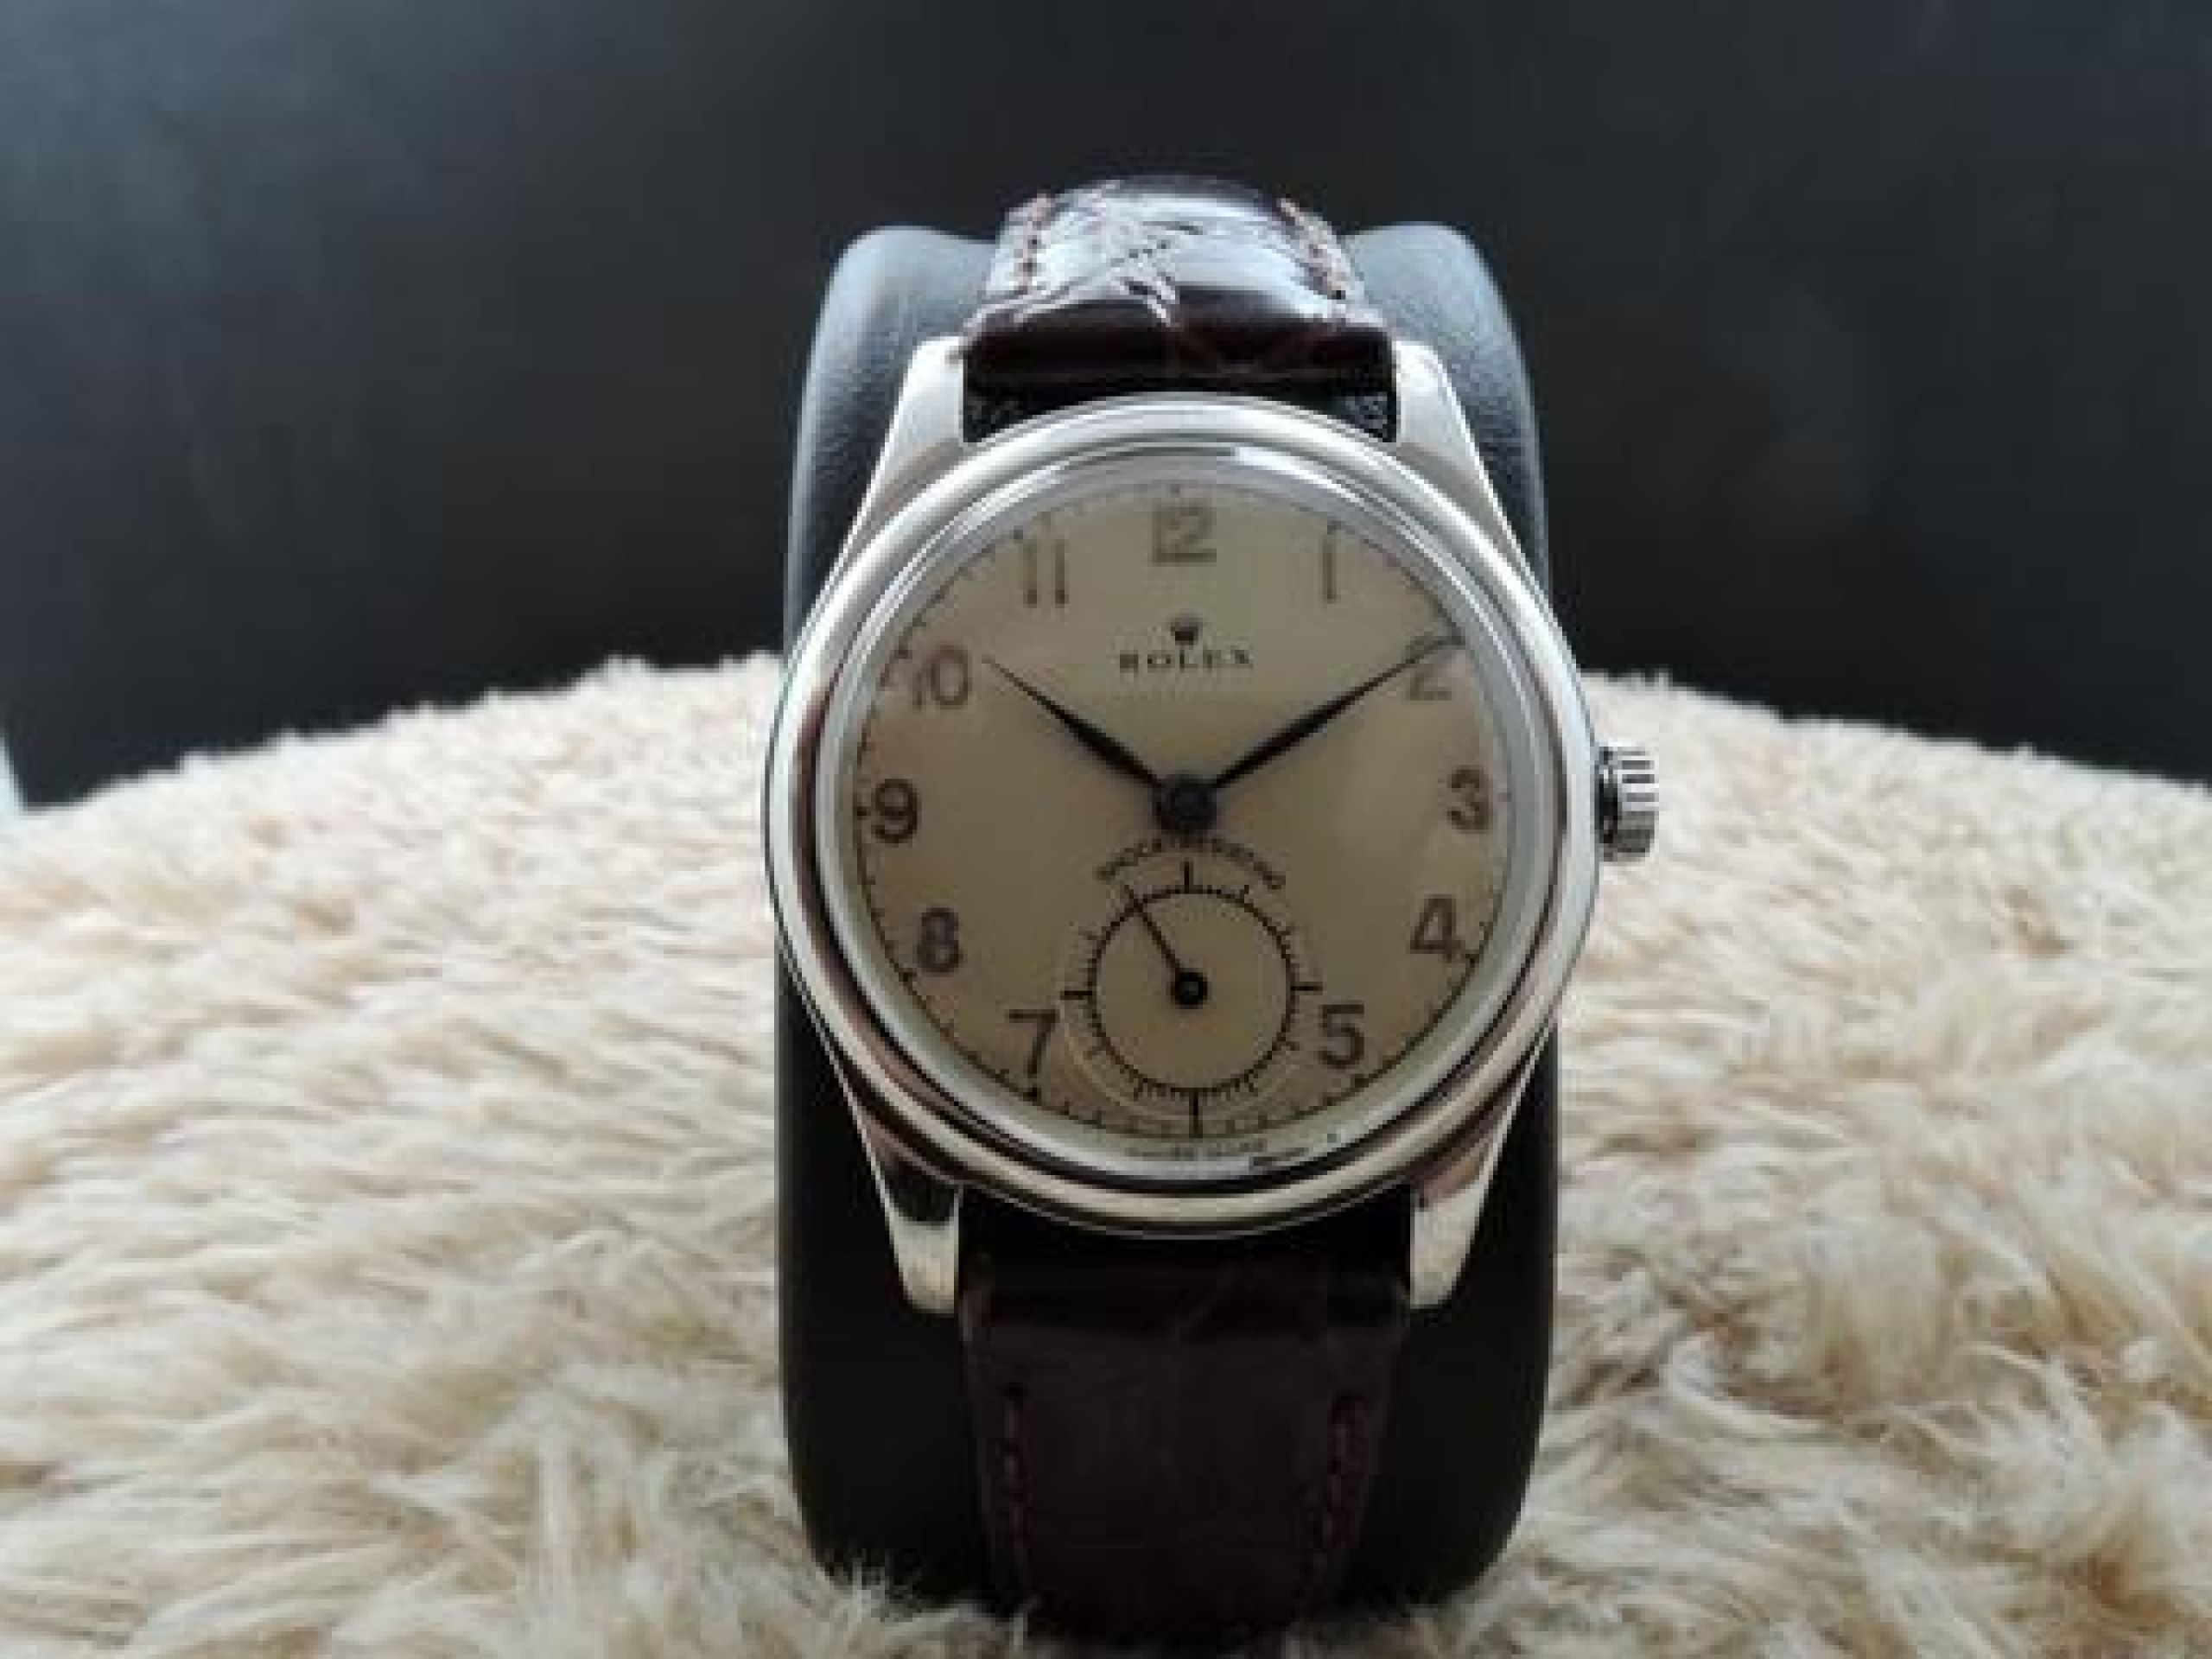 1947 ROLEX 3786 WITH CREAMY ARABIC DIAL AND SUB SECONDS SNAP BACK